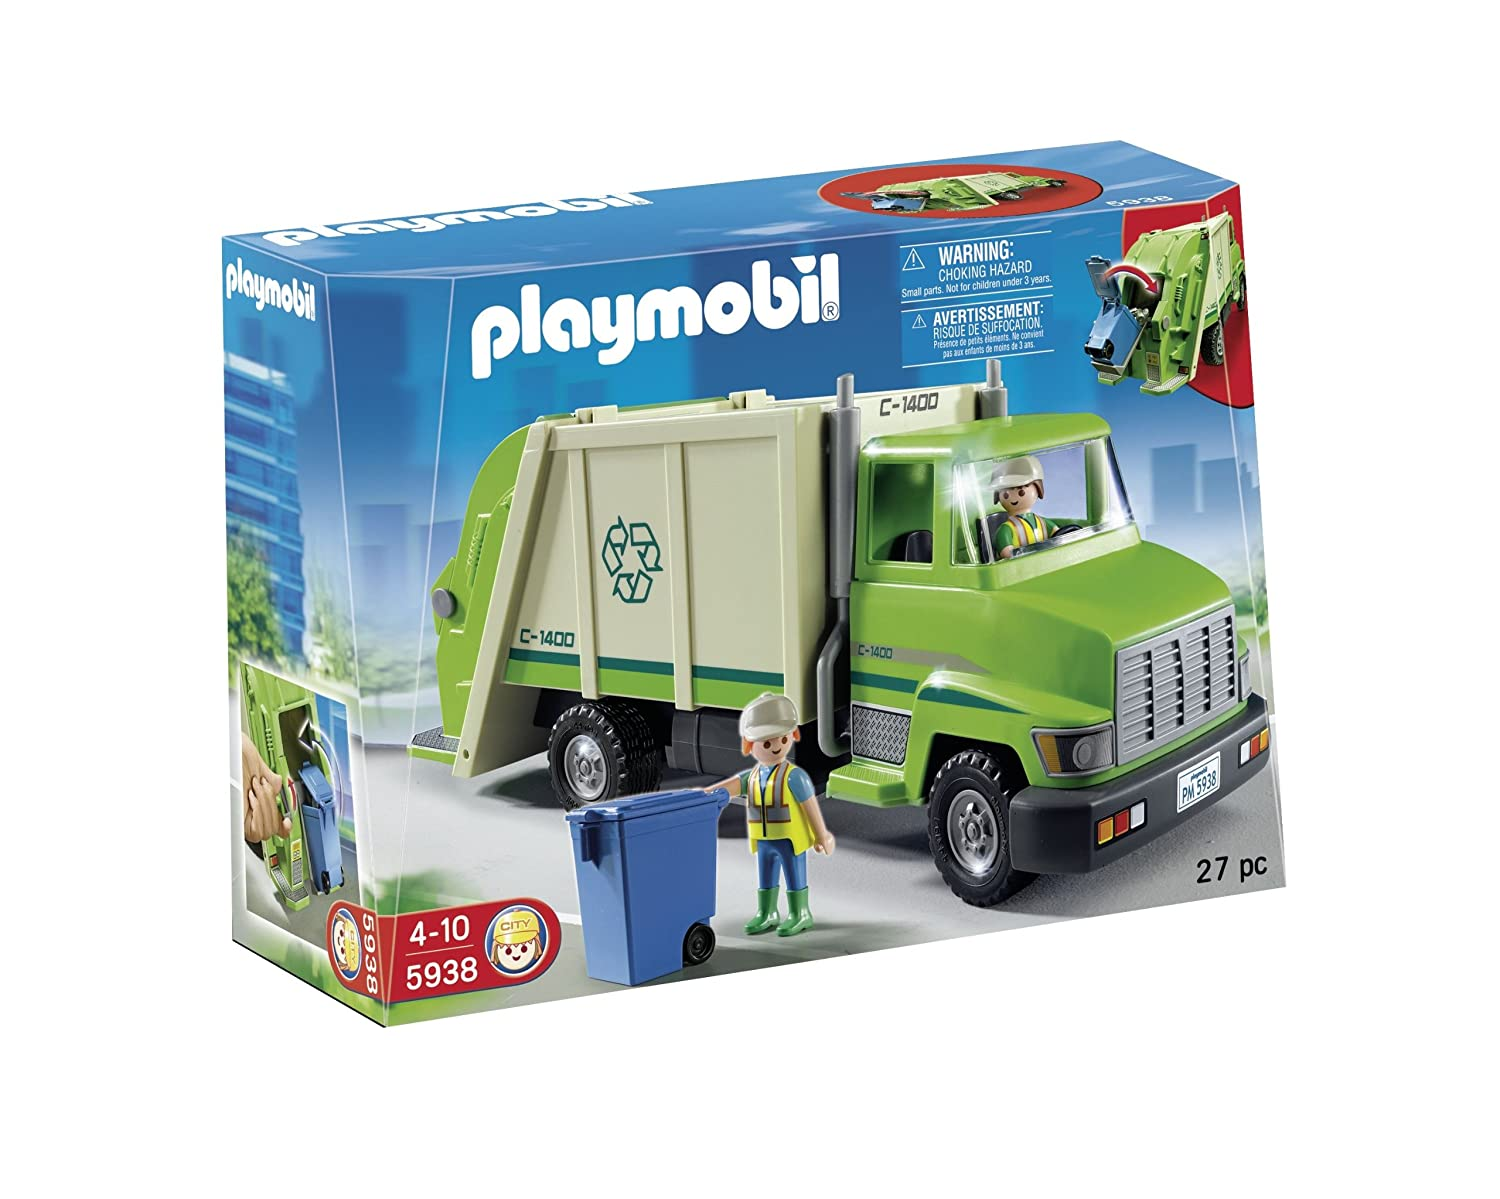 Amazon.com: PLAYMOBIL Green Recycling Truck: Toys & Games